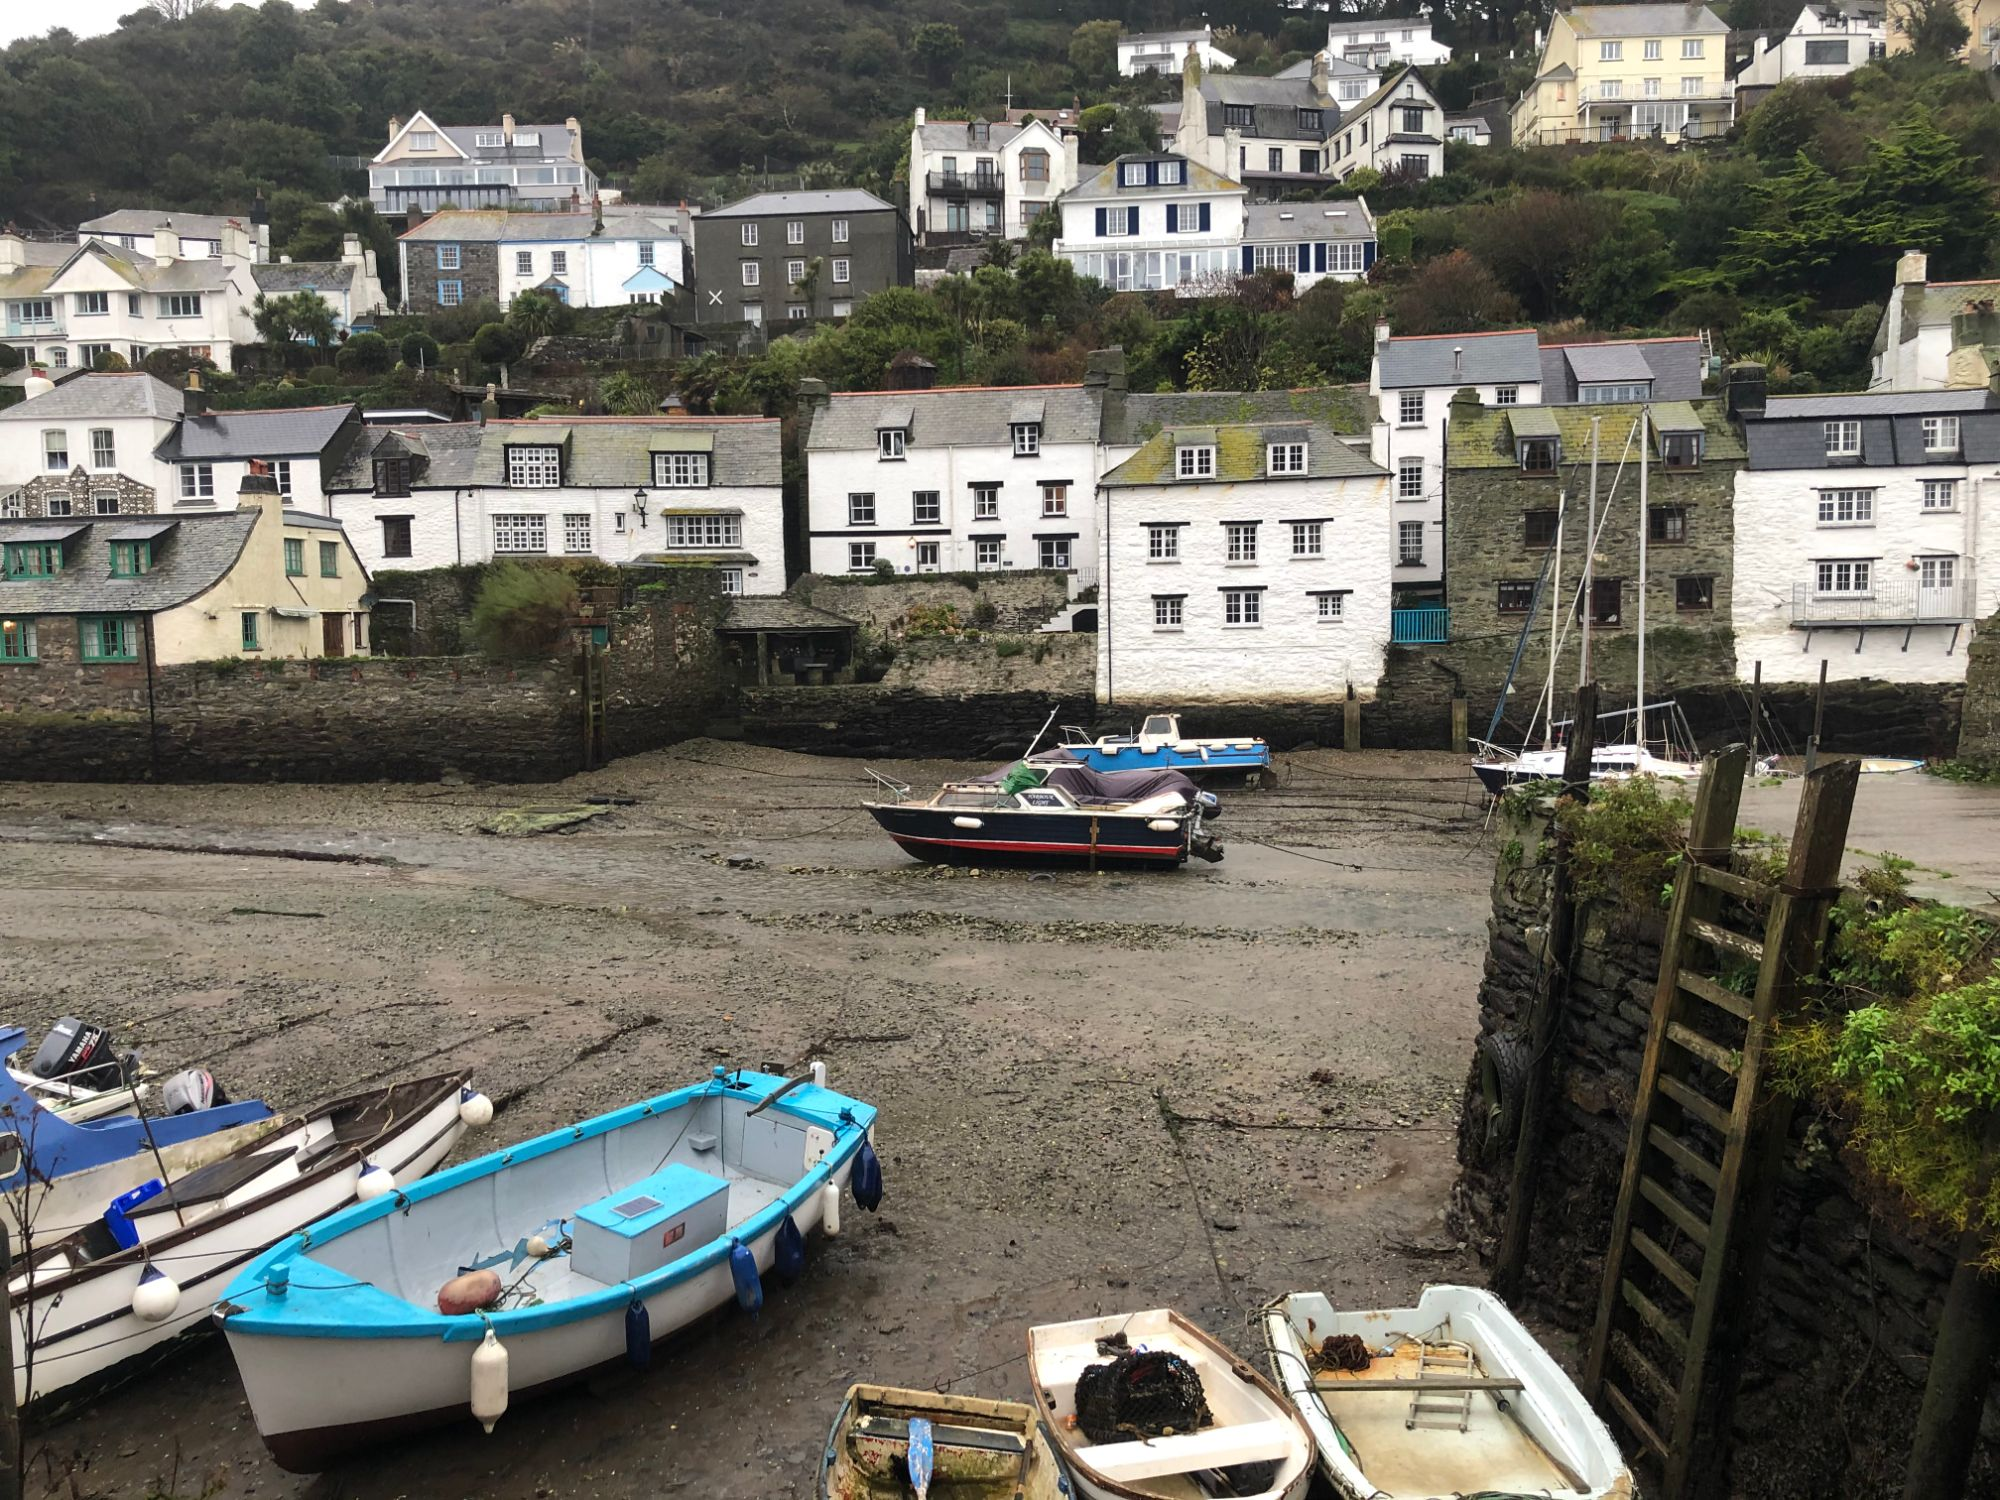 Free stock photo Polperro dry harbour Cornwall